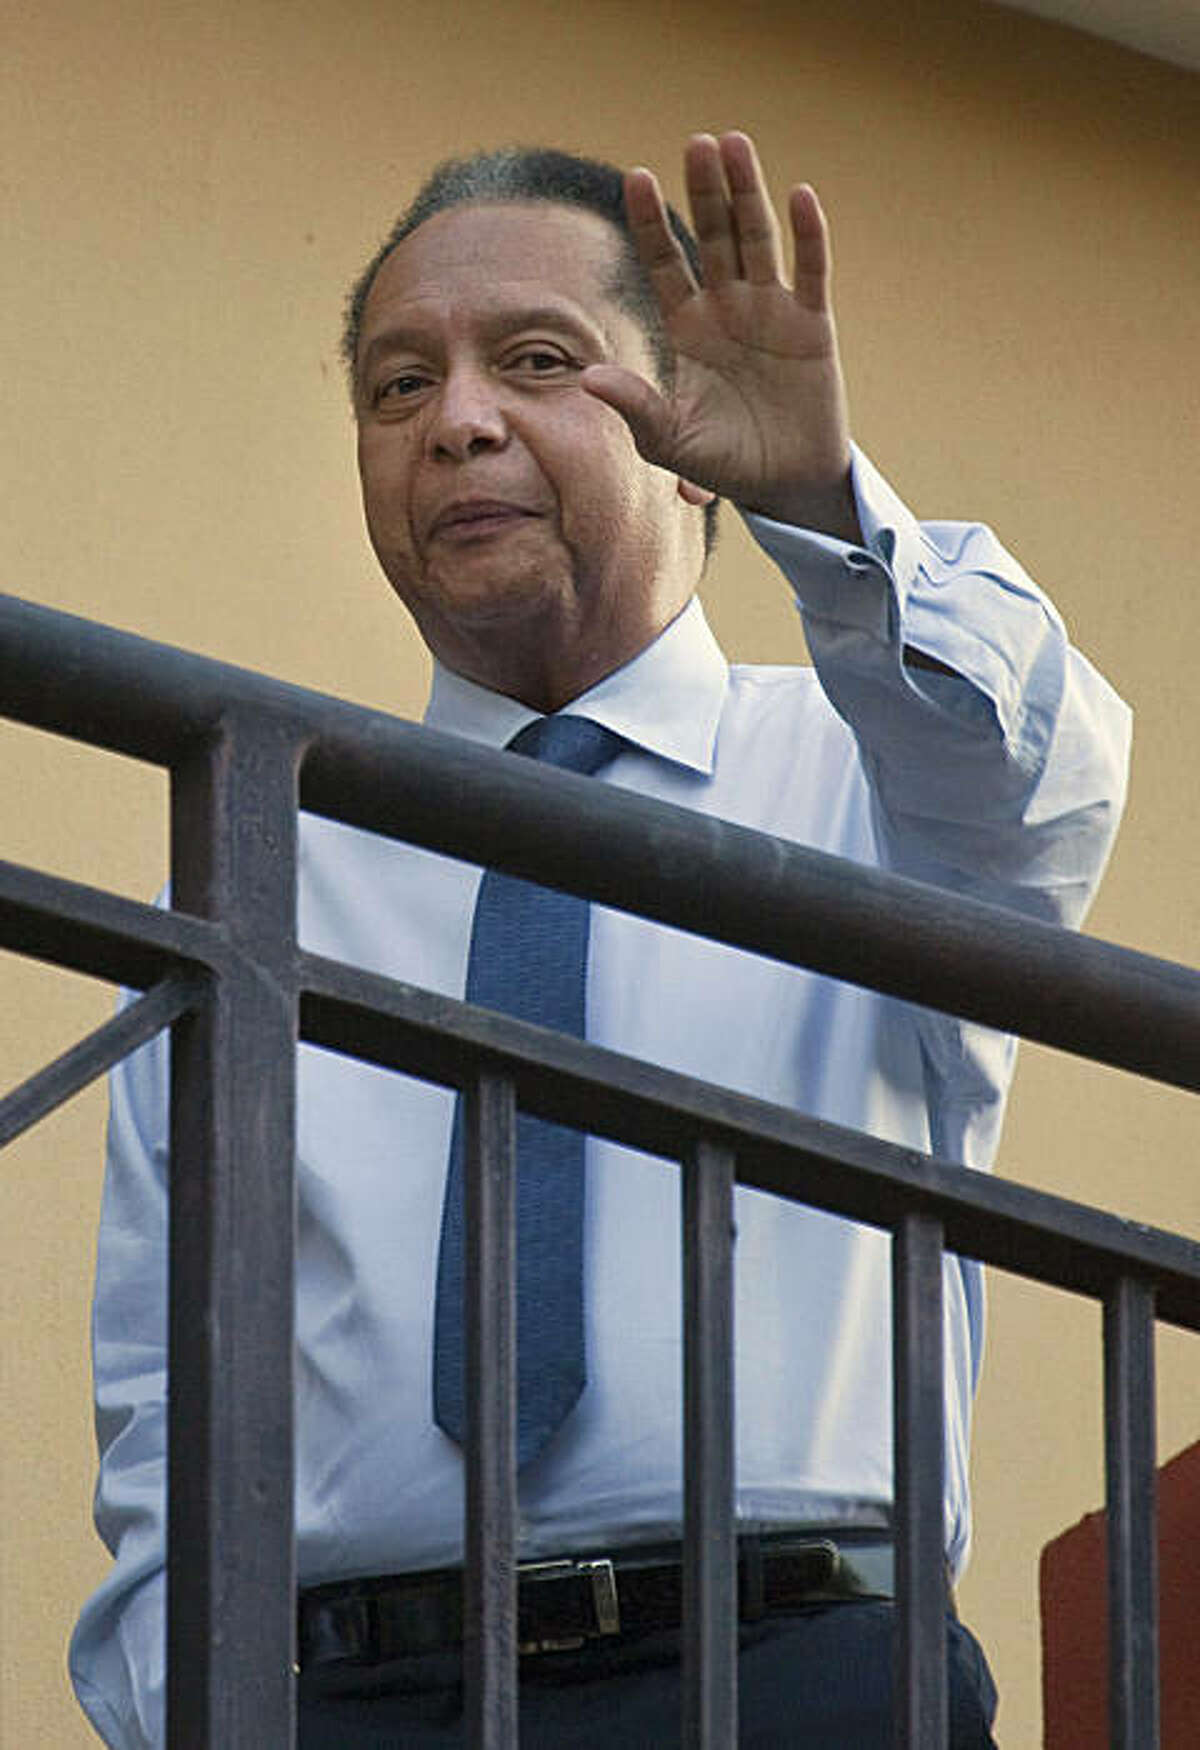 """Haiti's former dictator Jean-Claude """"Baby Doc"""" Duvalier waves to the press from a hotel balcony in Port-au-Prince, Haiti, Monday Jan. 17, 2011. Duvalier ensconced himself Monday in a high-end hotel following his surprise return to a country deep in crisis, leaving many to wonder if the once-feared strongman will complicate a political stalemate or prompt renewed conflict."""